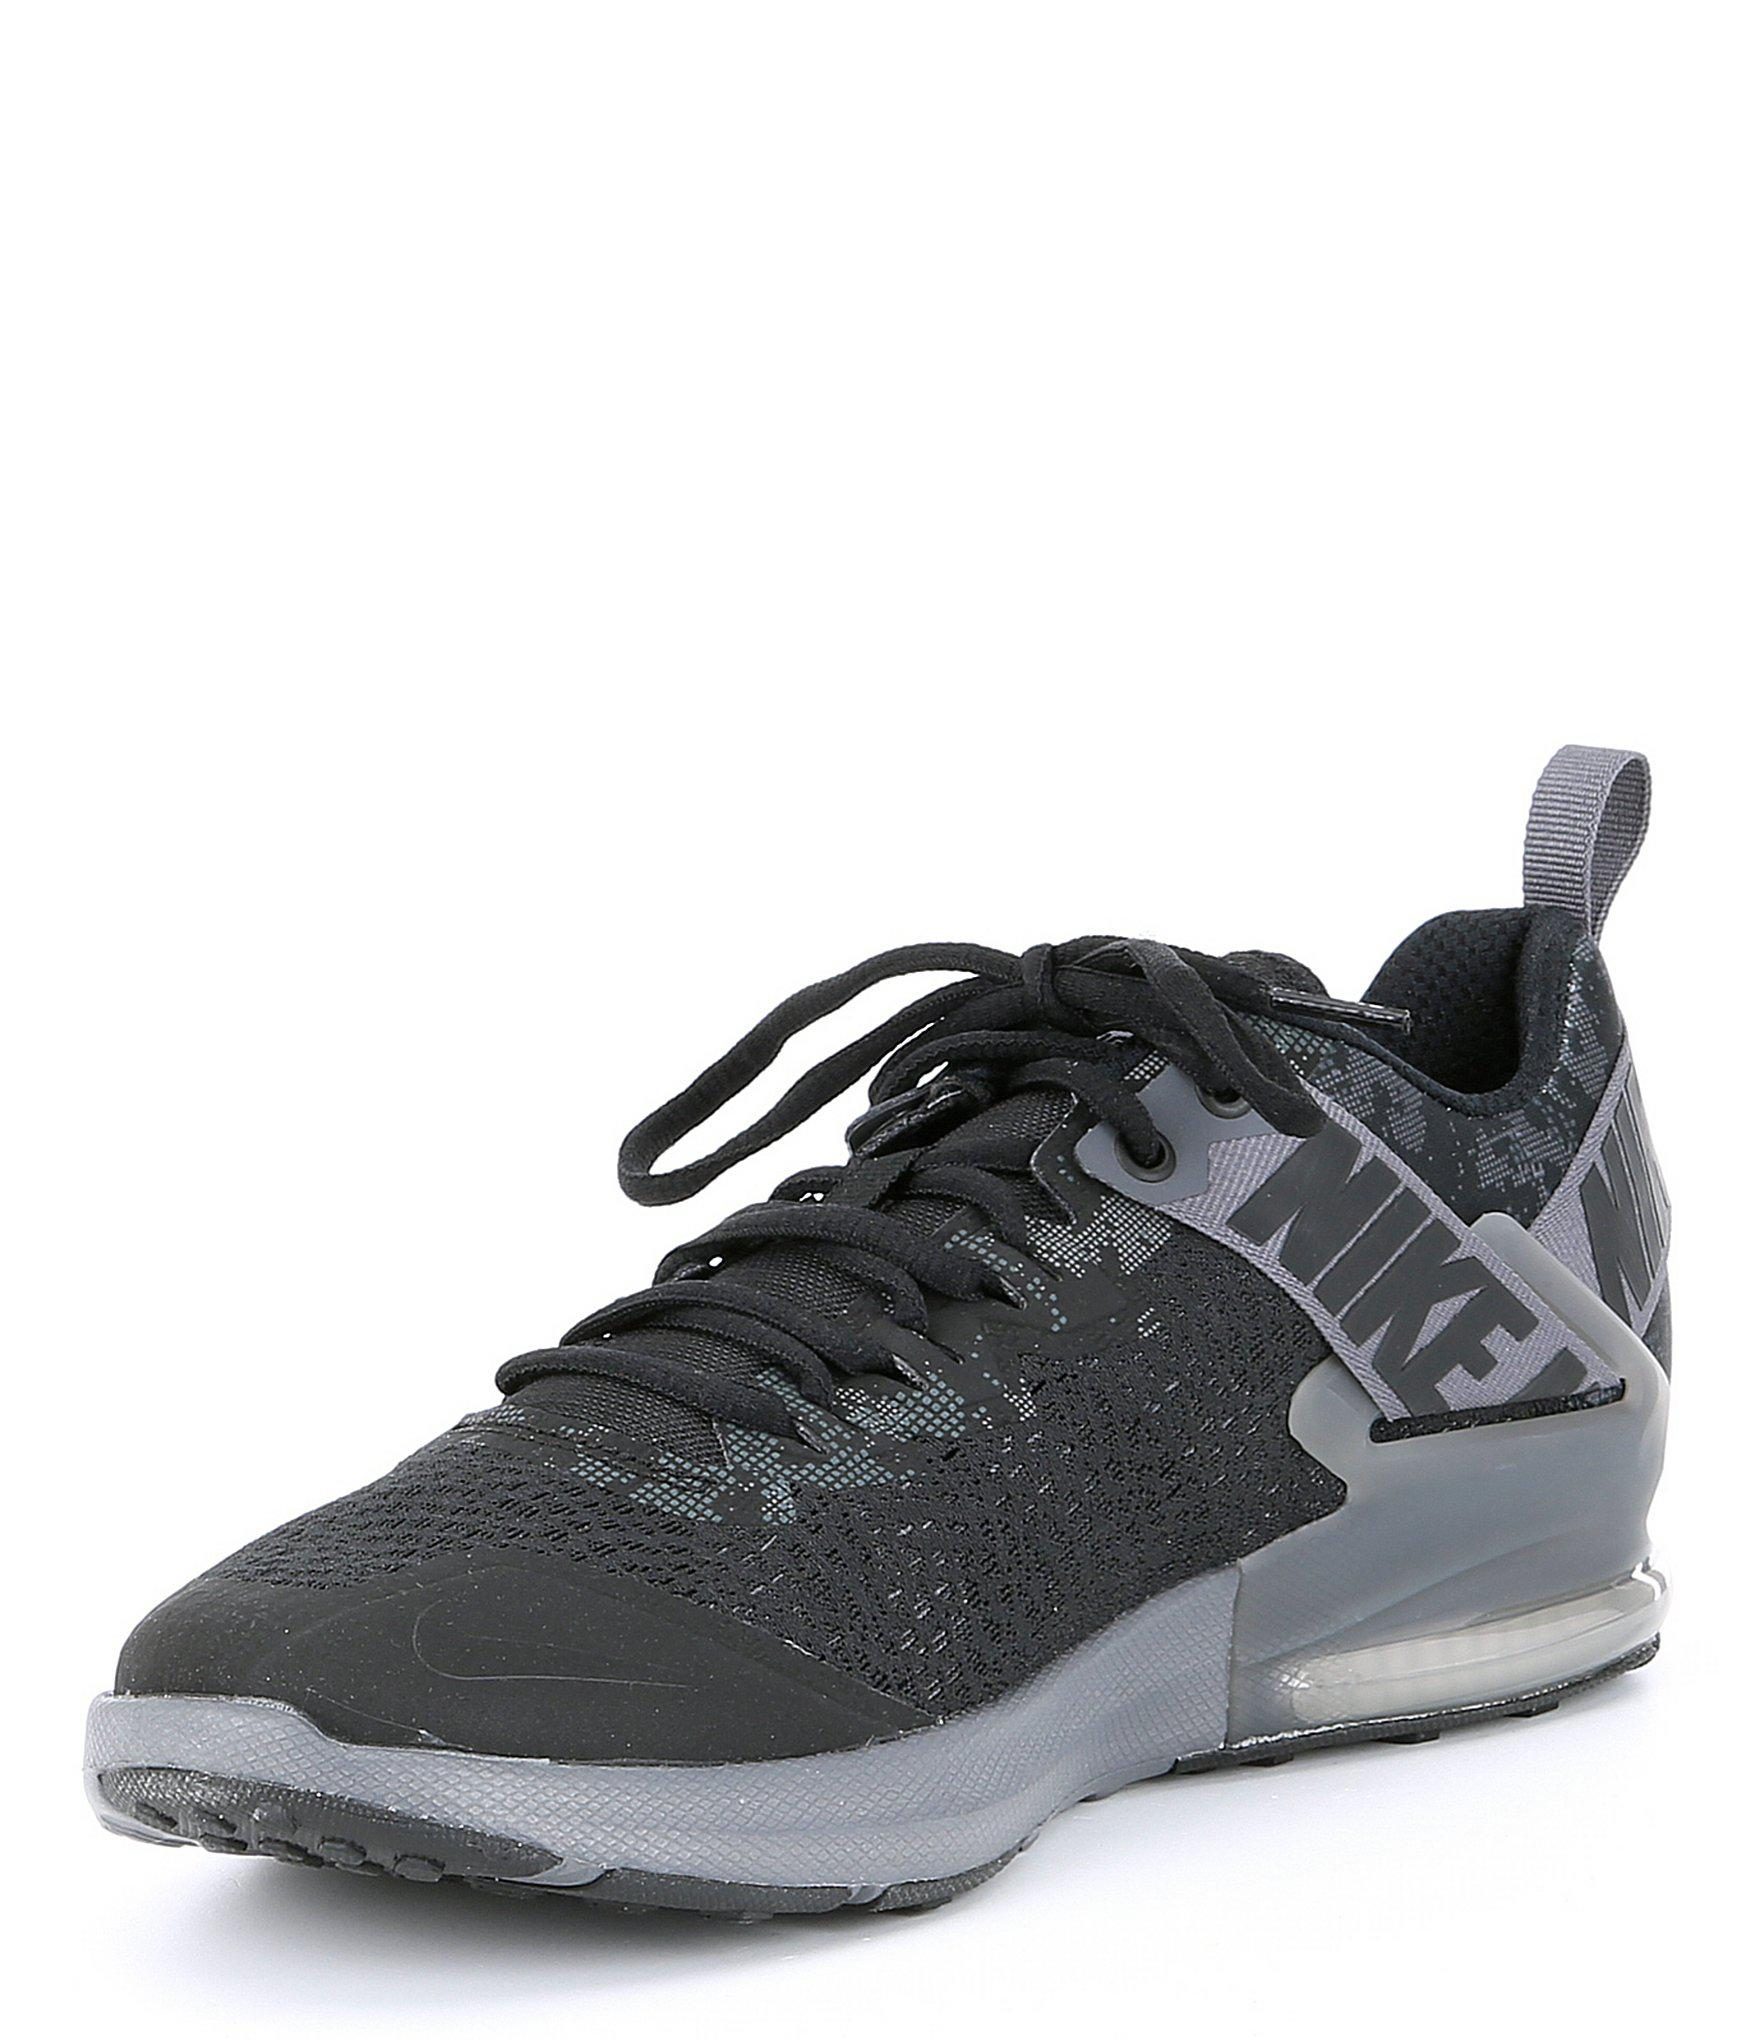 cf328569c73f Domination Gray Men s In Zoom Nike Lyst Men 2 Tr For Shoe Training  qfBtngzwxZ